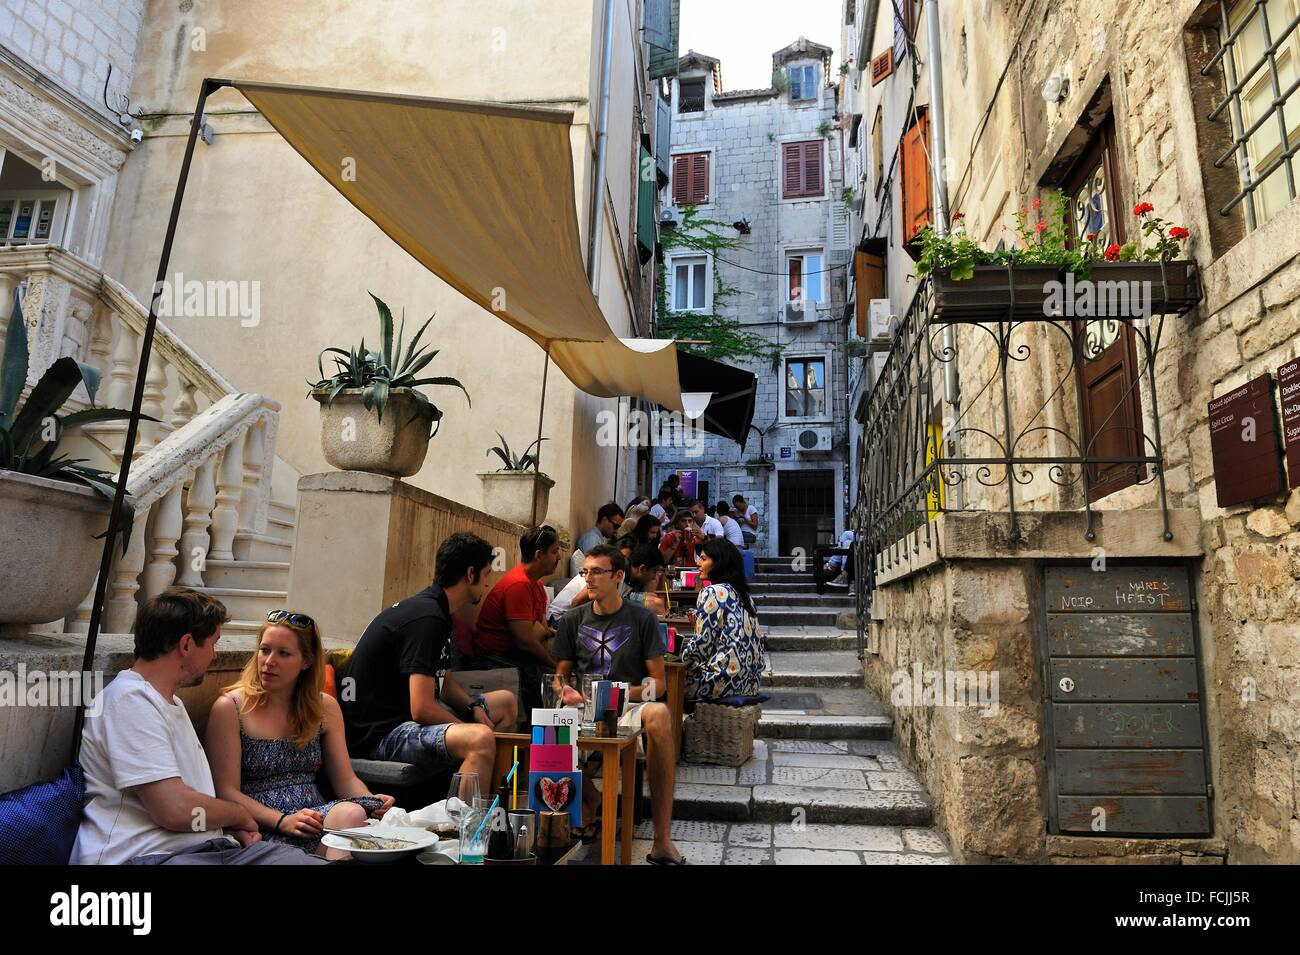 out side Cafe Fluid, Dosud 1 street, Old Town, Split, Croatia, Southeast Europe. - Stock Image